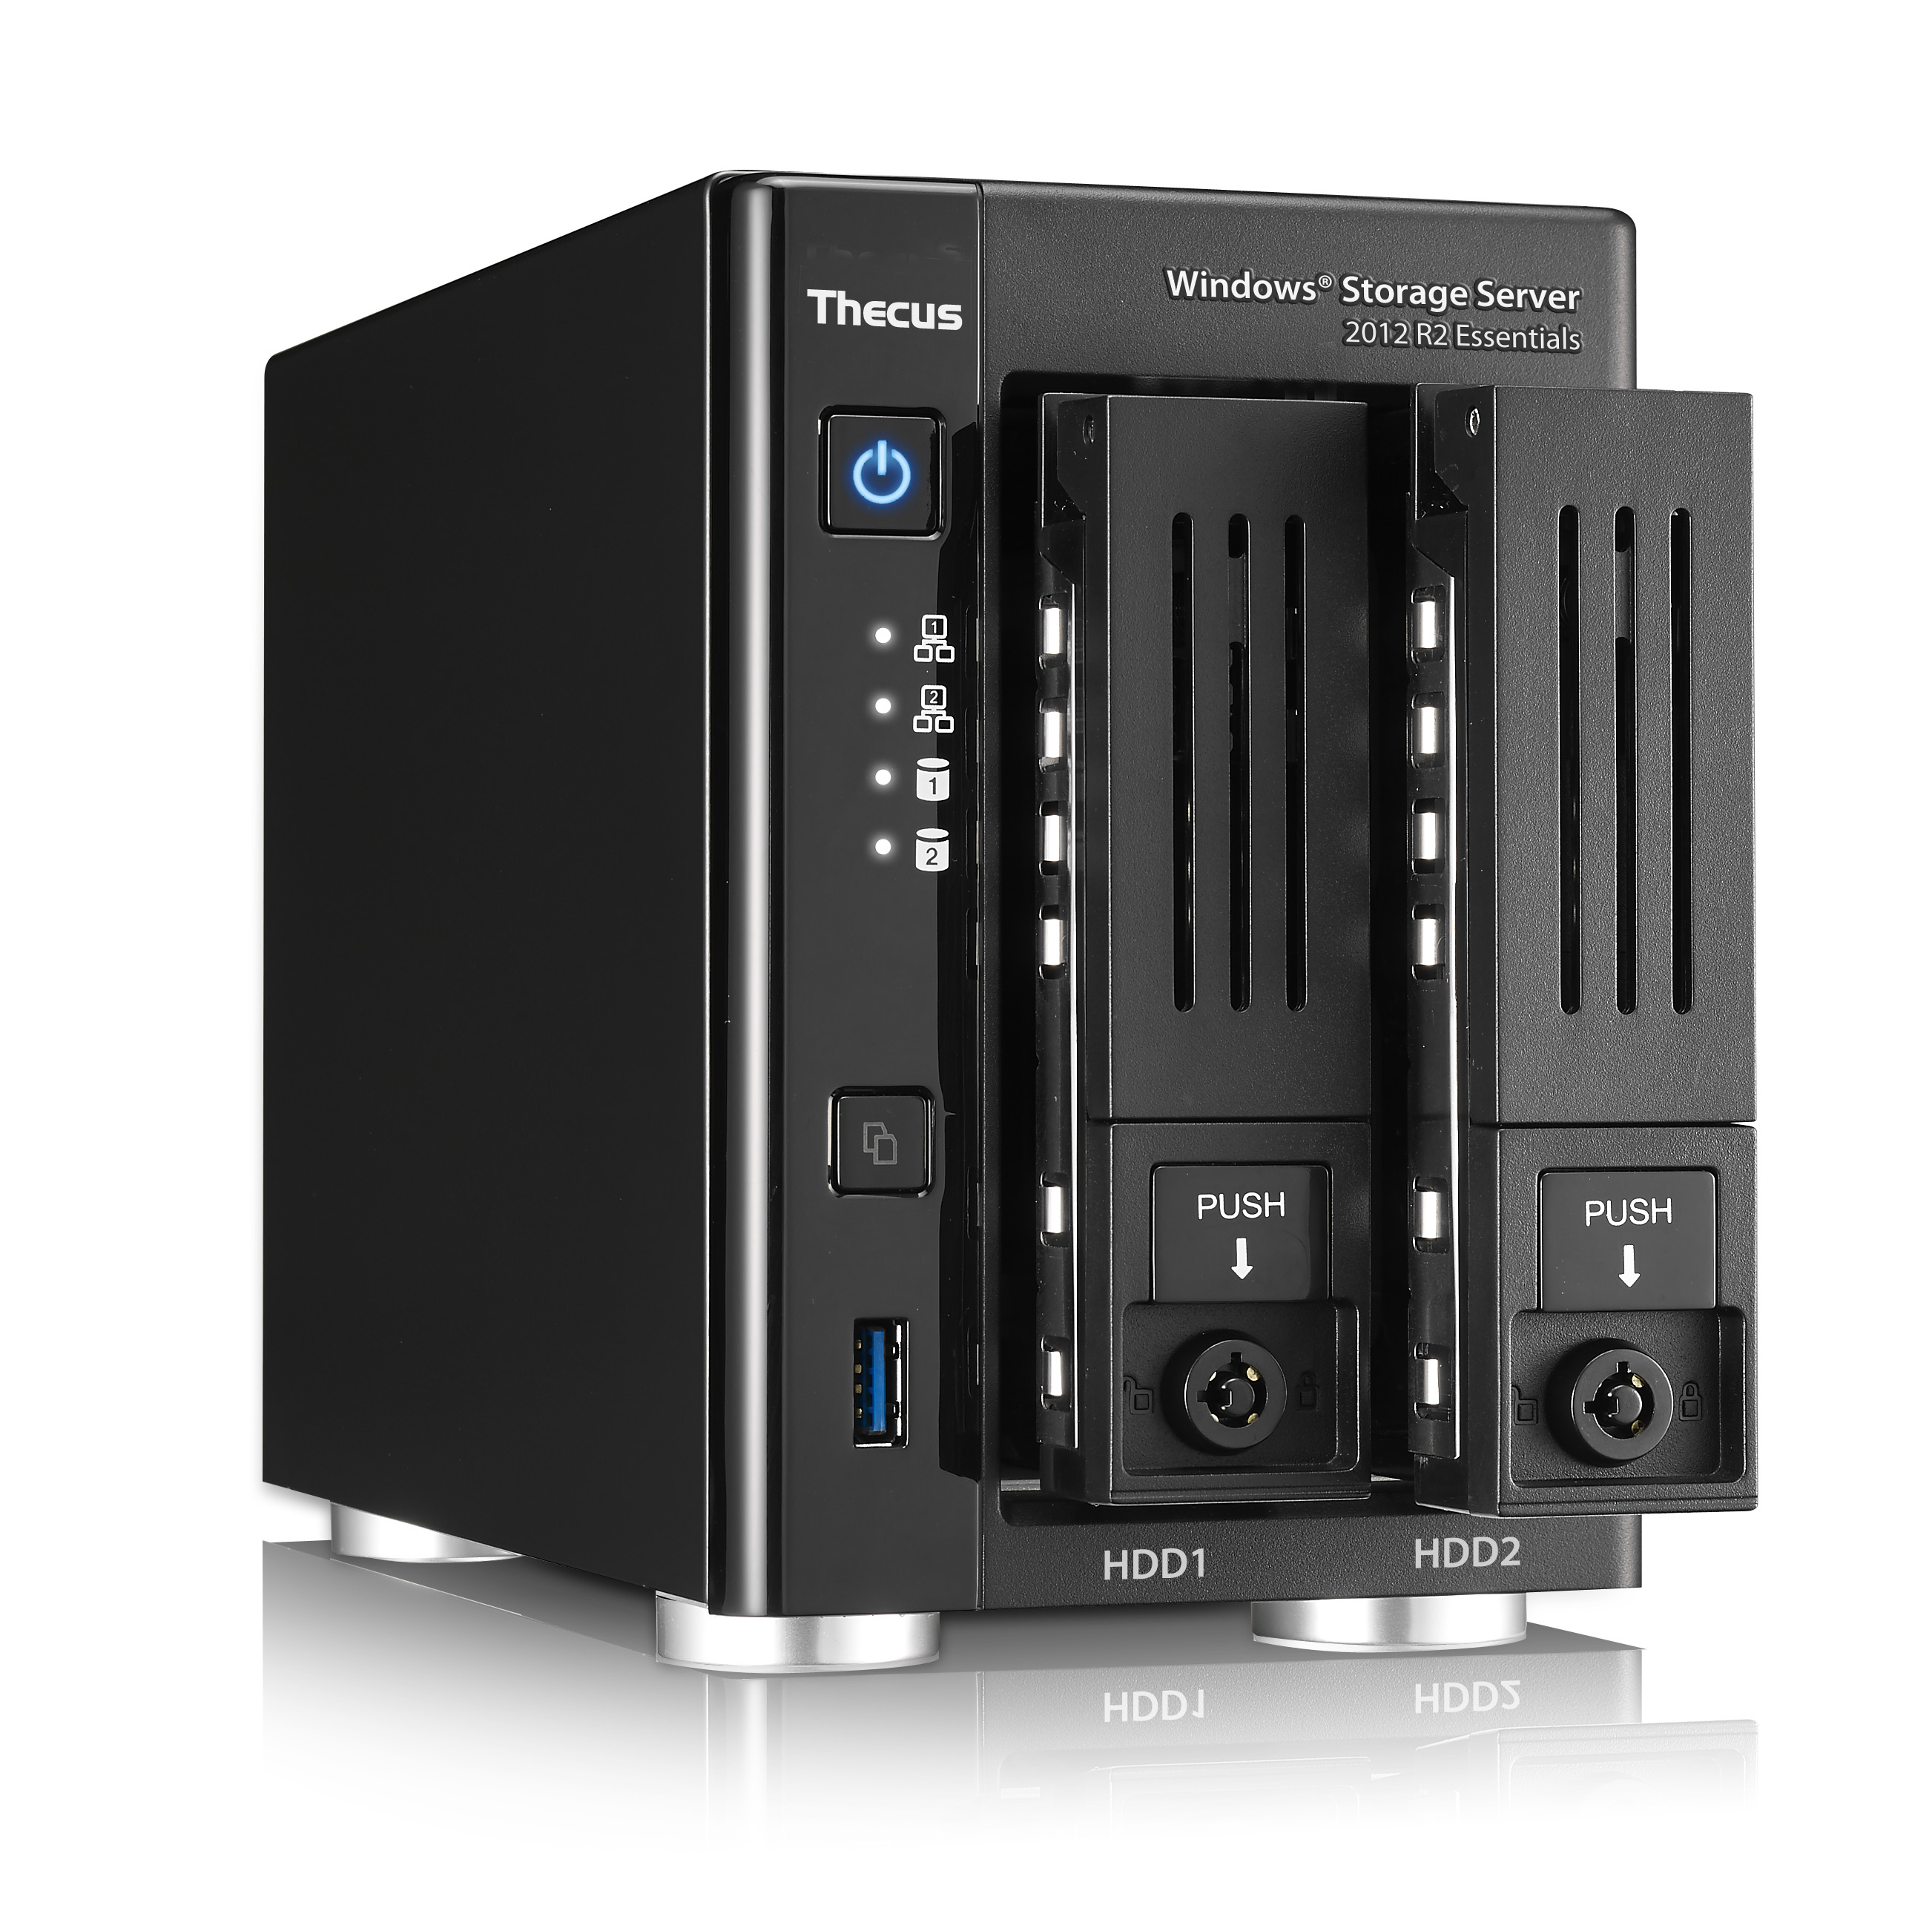 Thecus W2810PRO, un NAS basato su Windows Storage Server R2 Essentials, ideale per le piccole imprese